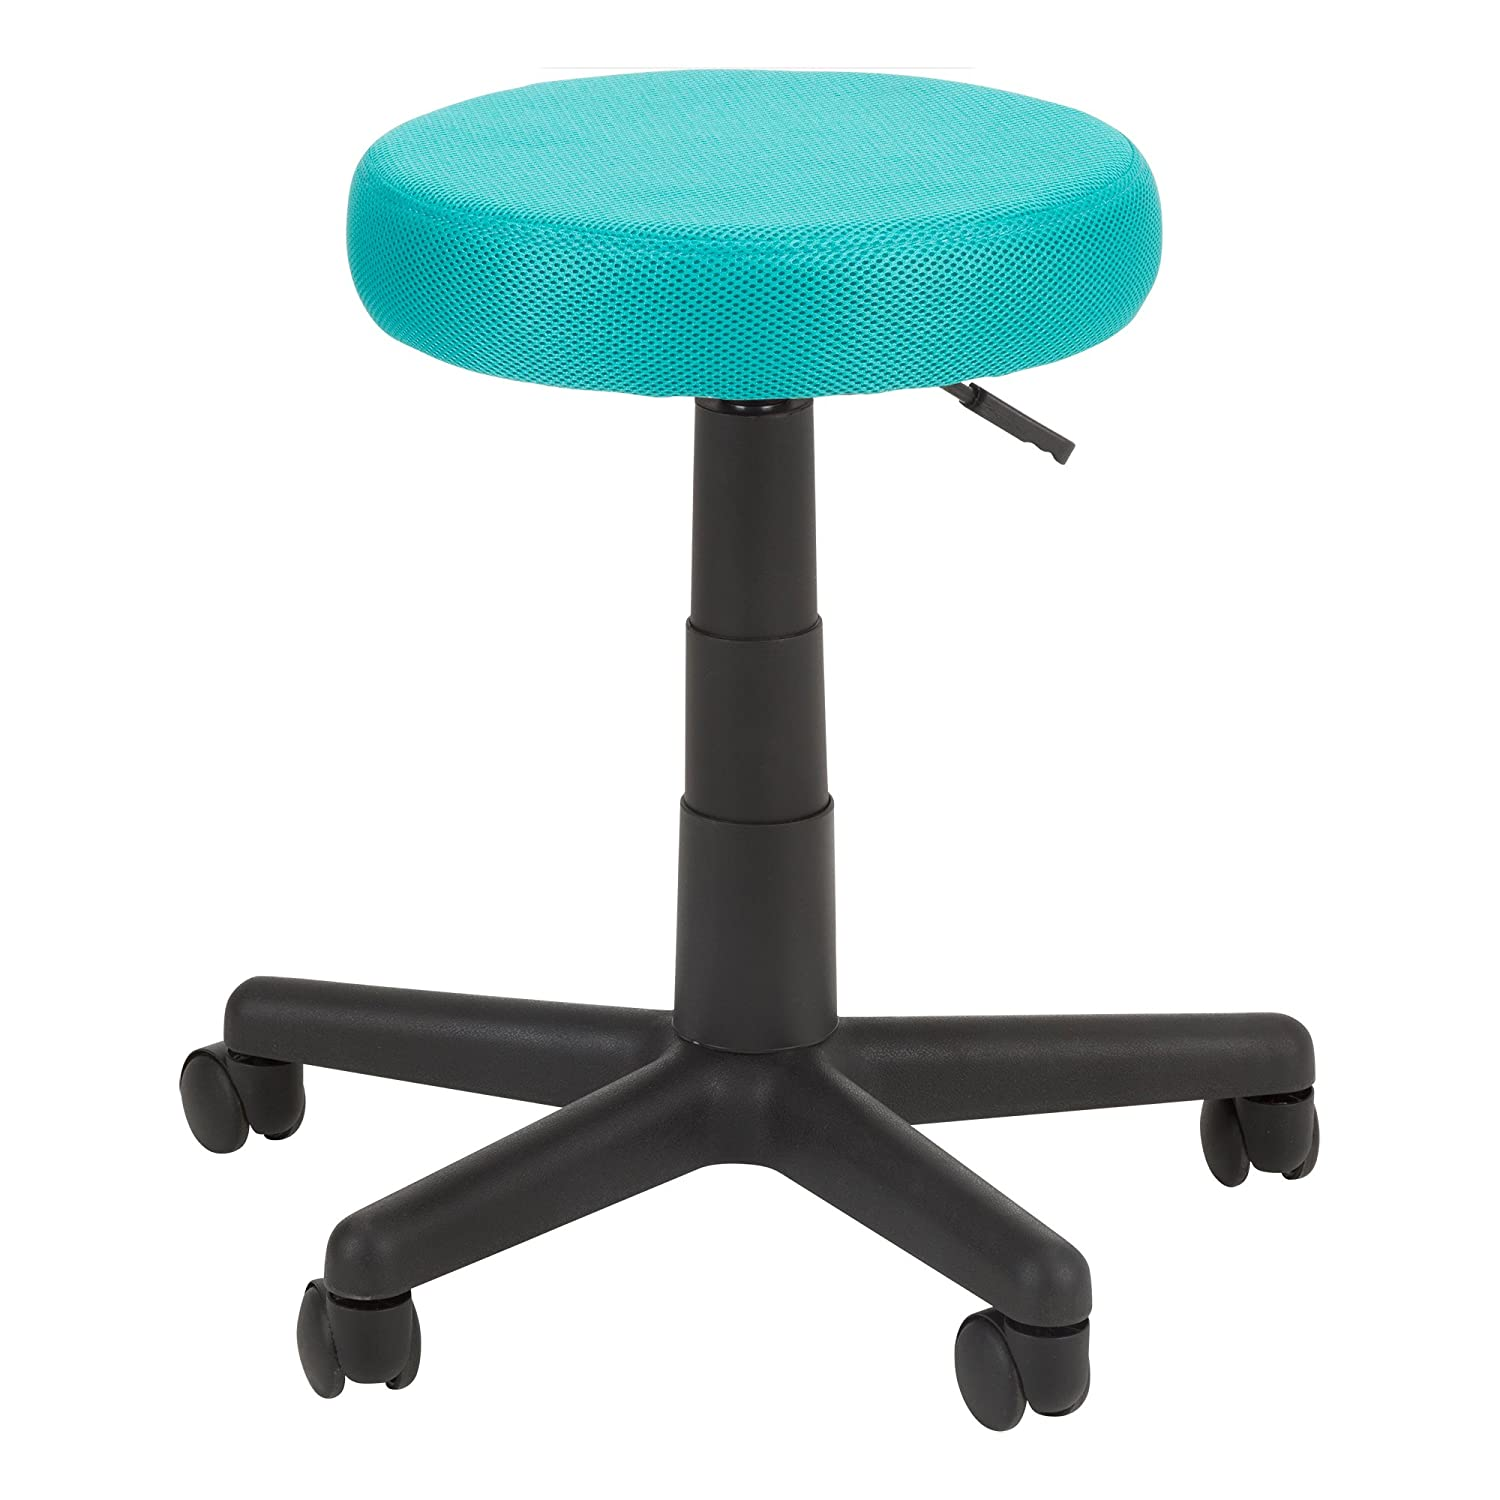 Norwood Commercial Furniture NOR-OUG1008FA-TL-SO Adjustable-Height Colorful Mesh Utility Stool, Teal